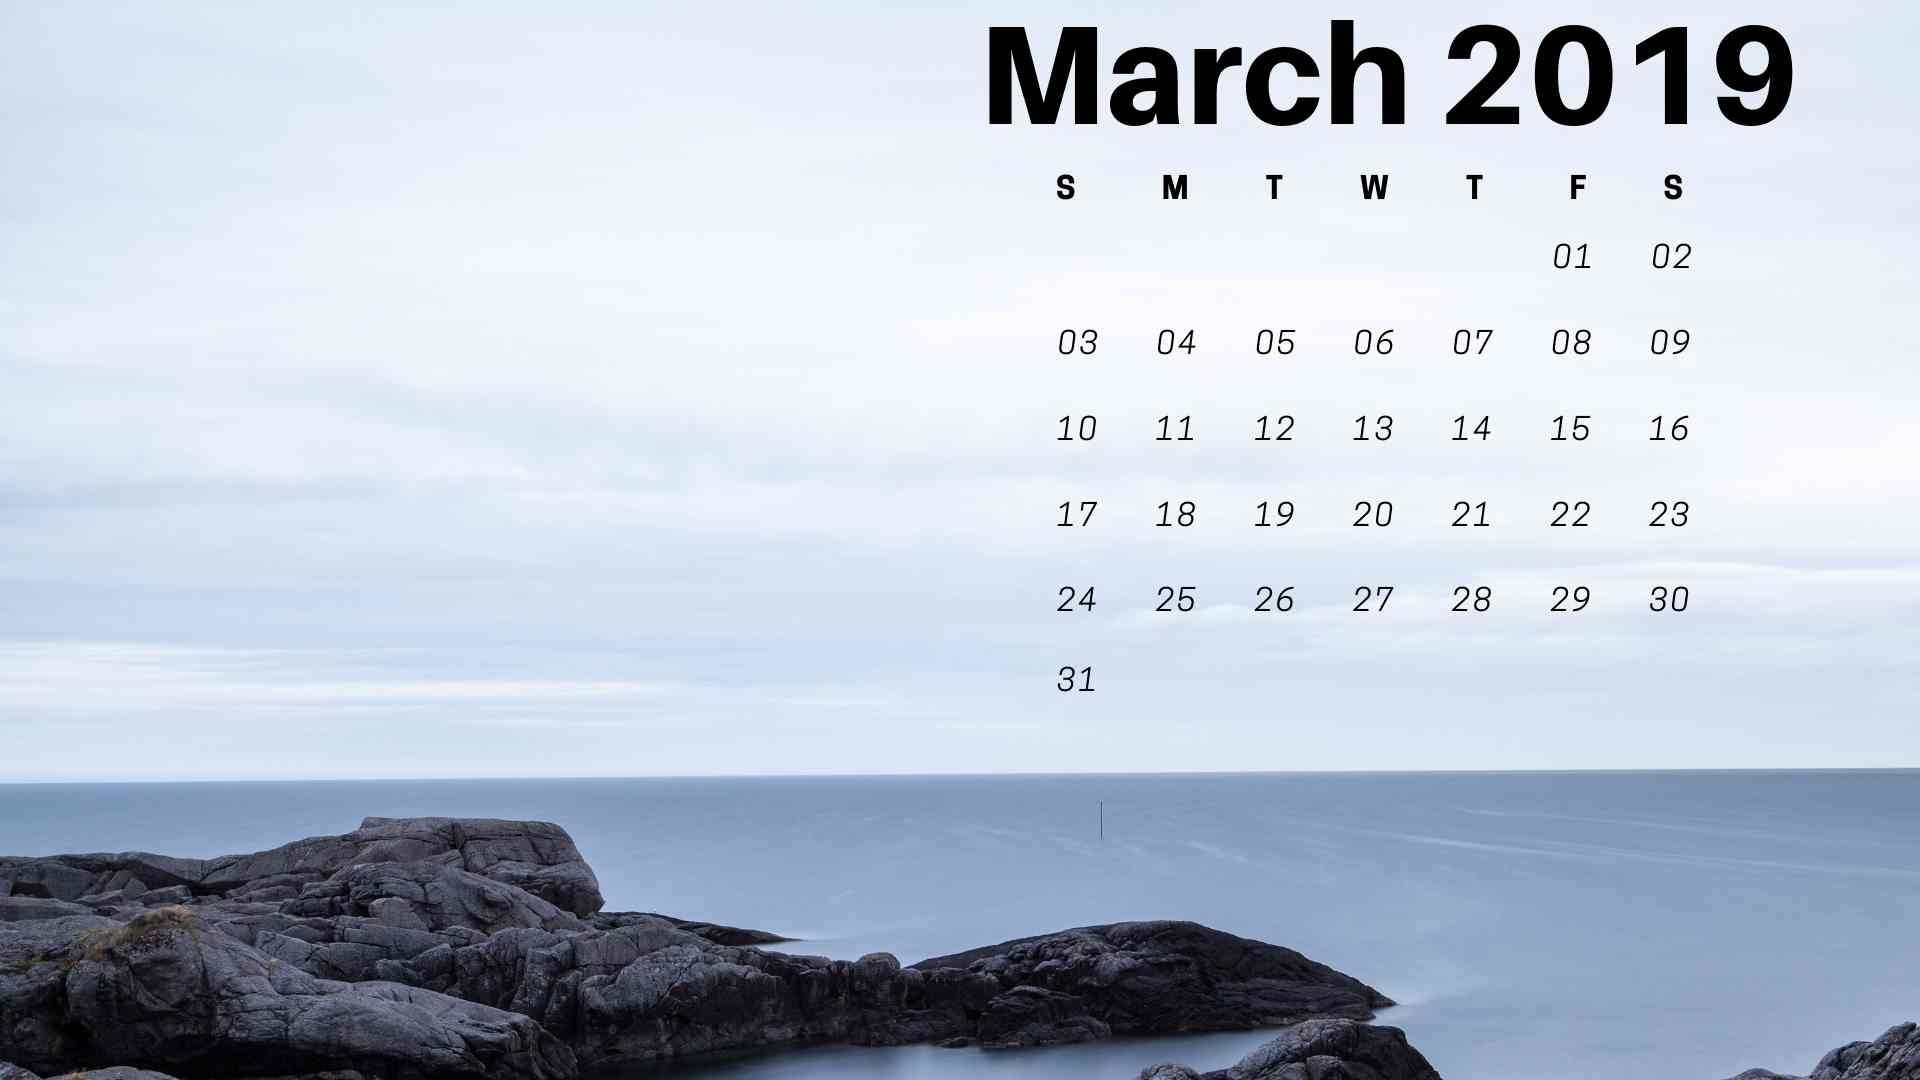 2019 March Calendar Nz Más Caliente March 2019 Calendar Wallpaper Desktop March Calendar Calenda2019 Of 2019 March Calendar Nz Más Recientes March 2019 Calendar Nz